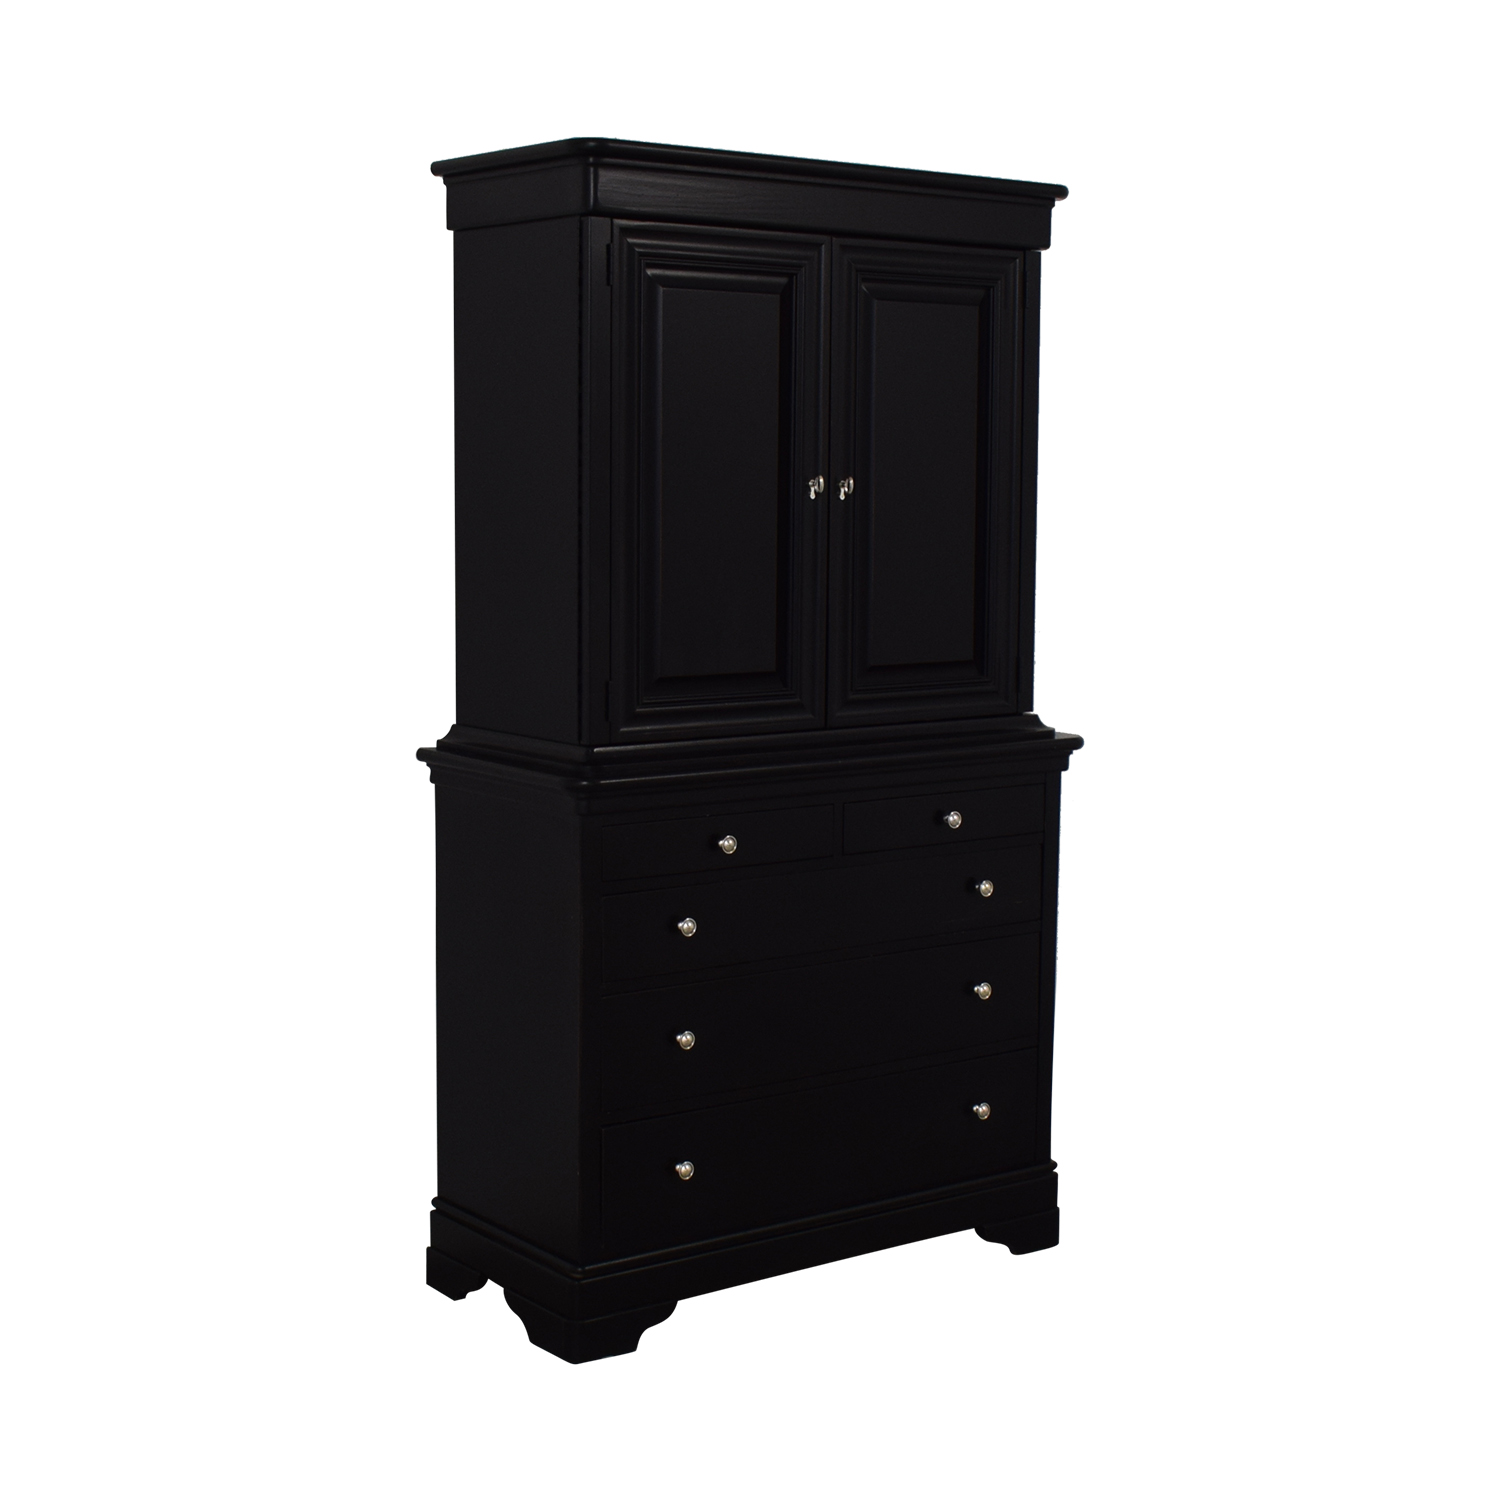 Stanley Furniture Armoire / Storage